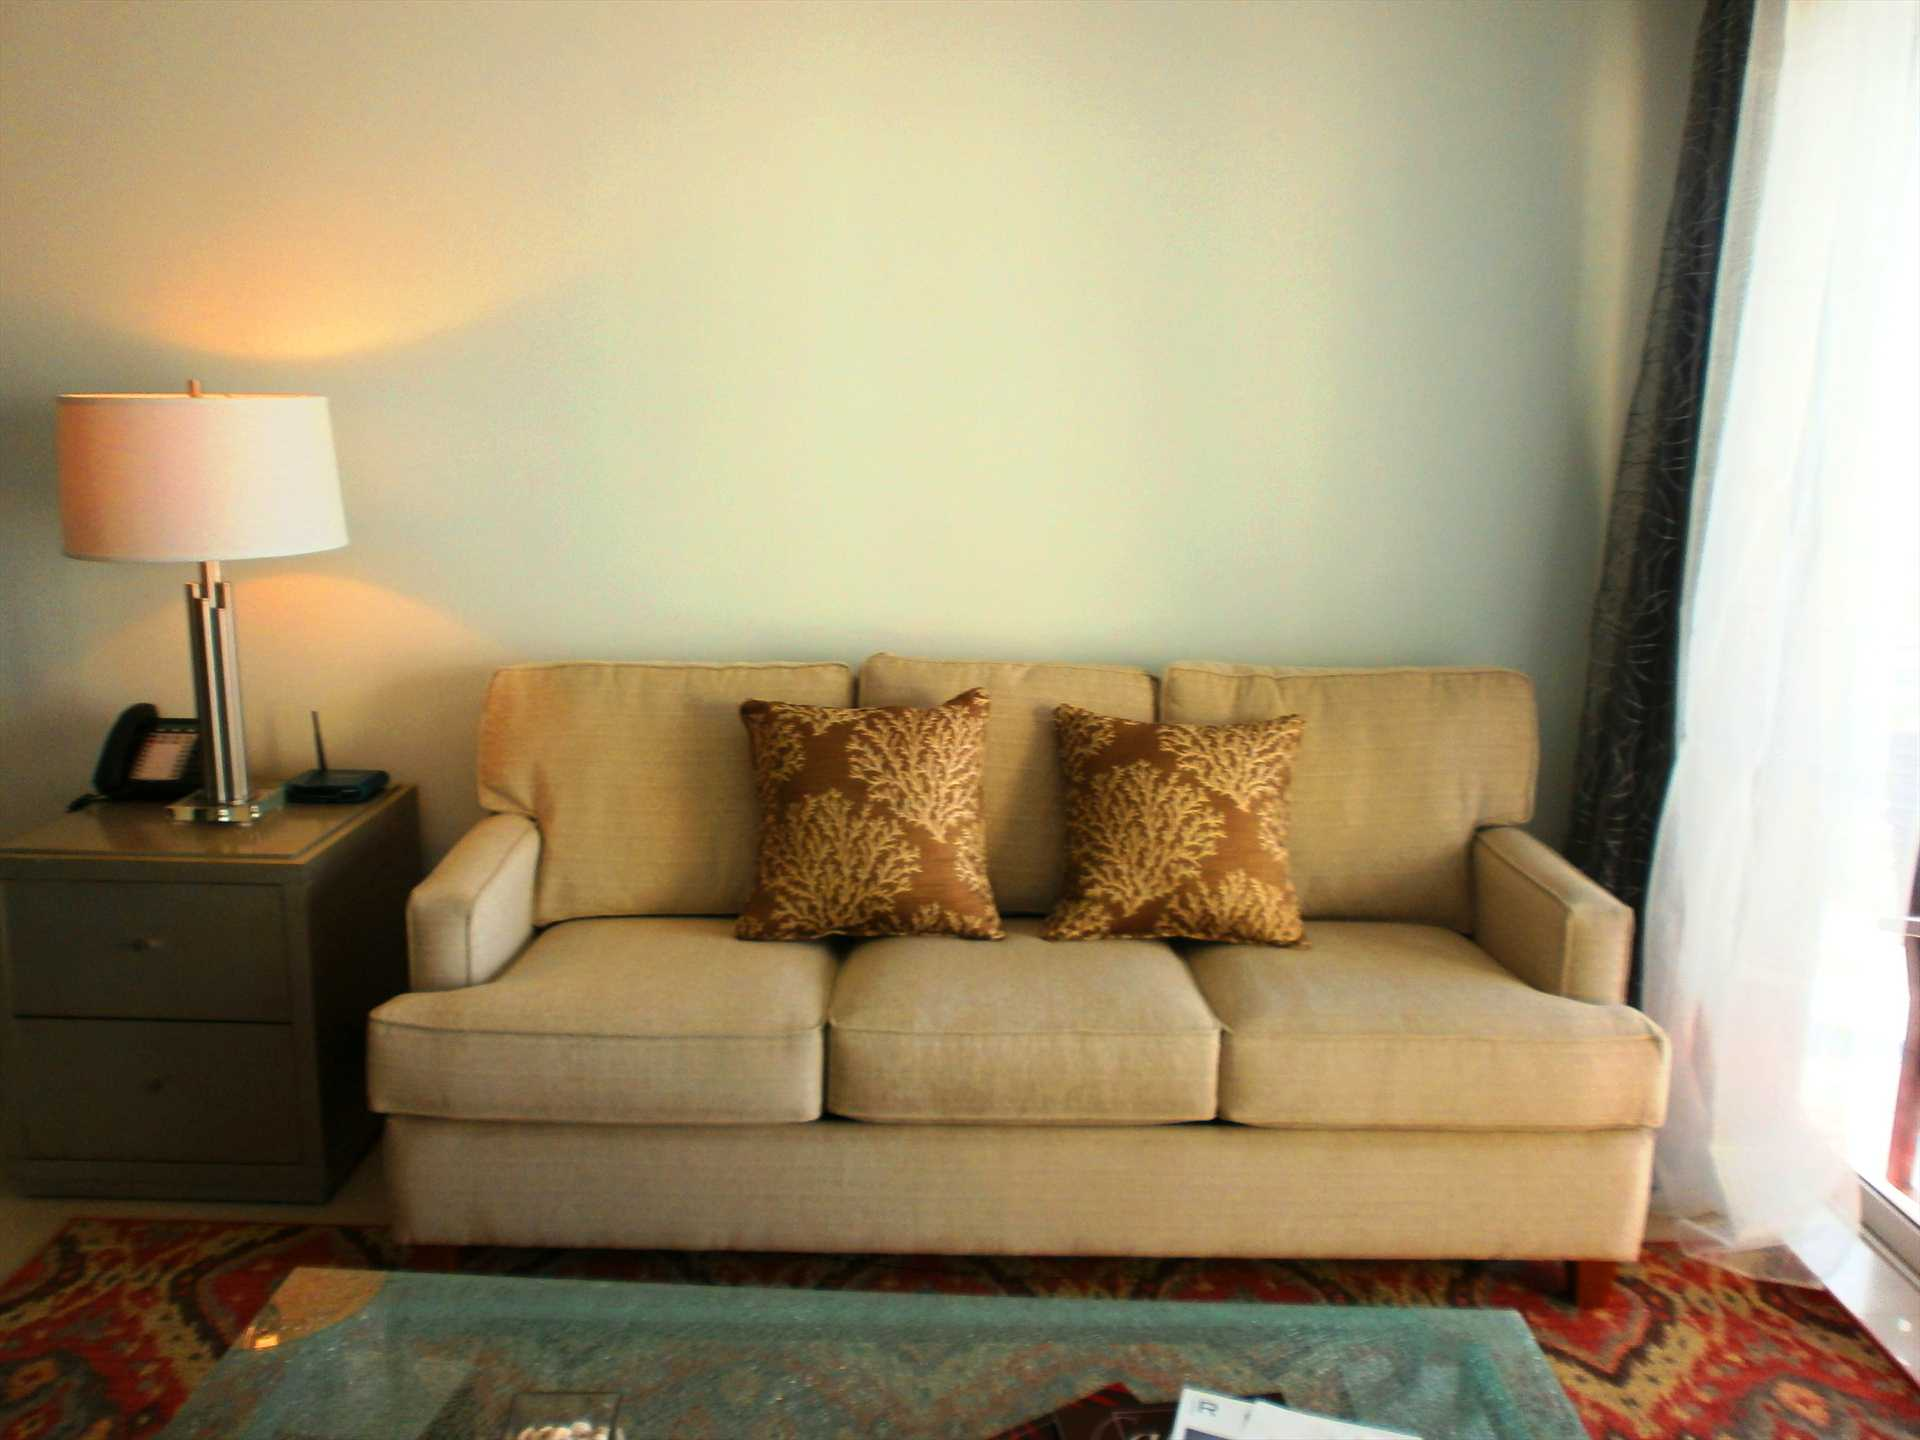 Queen-size sofa bed in living area.